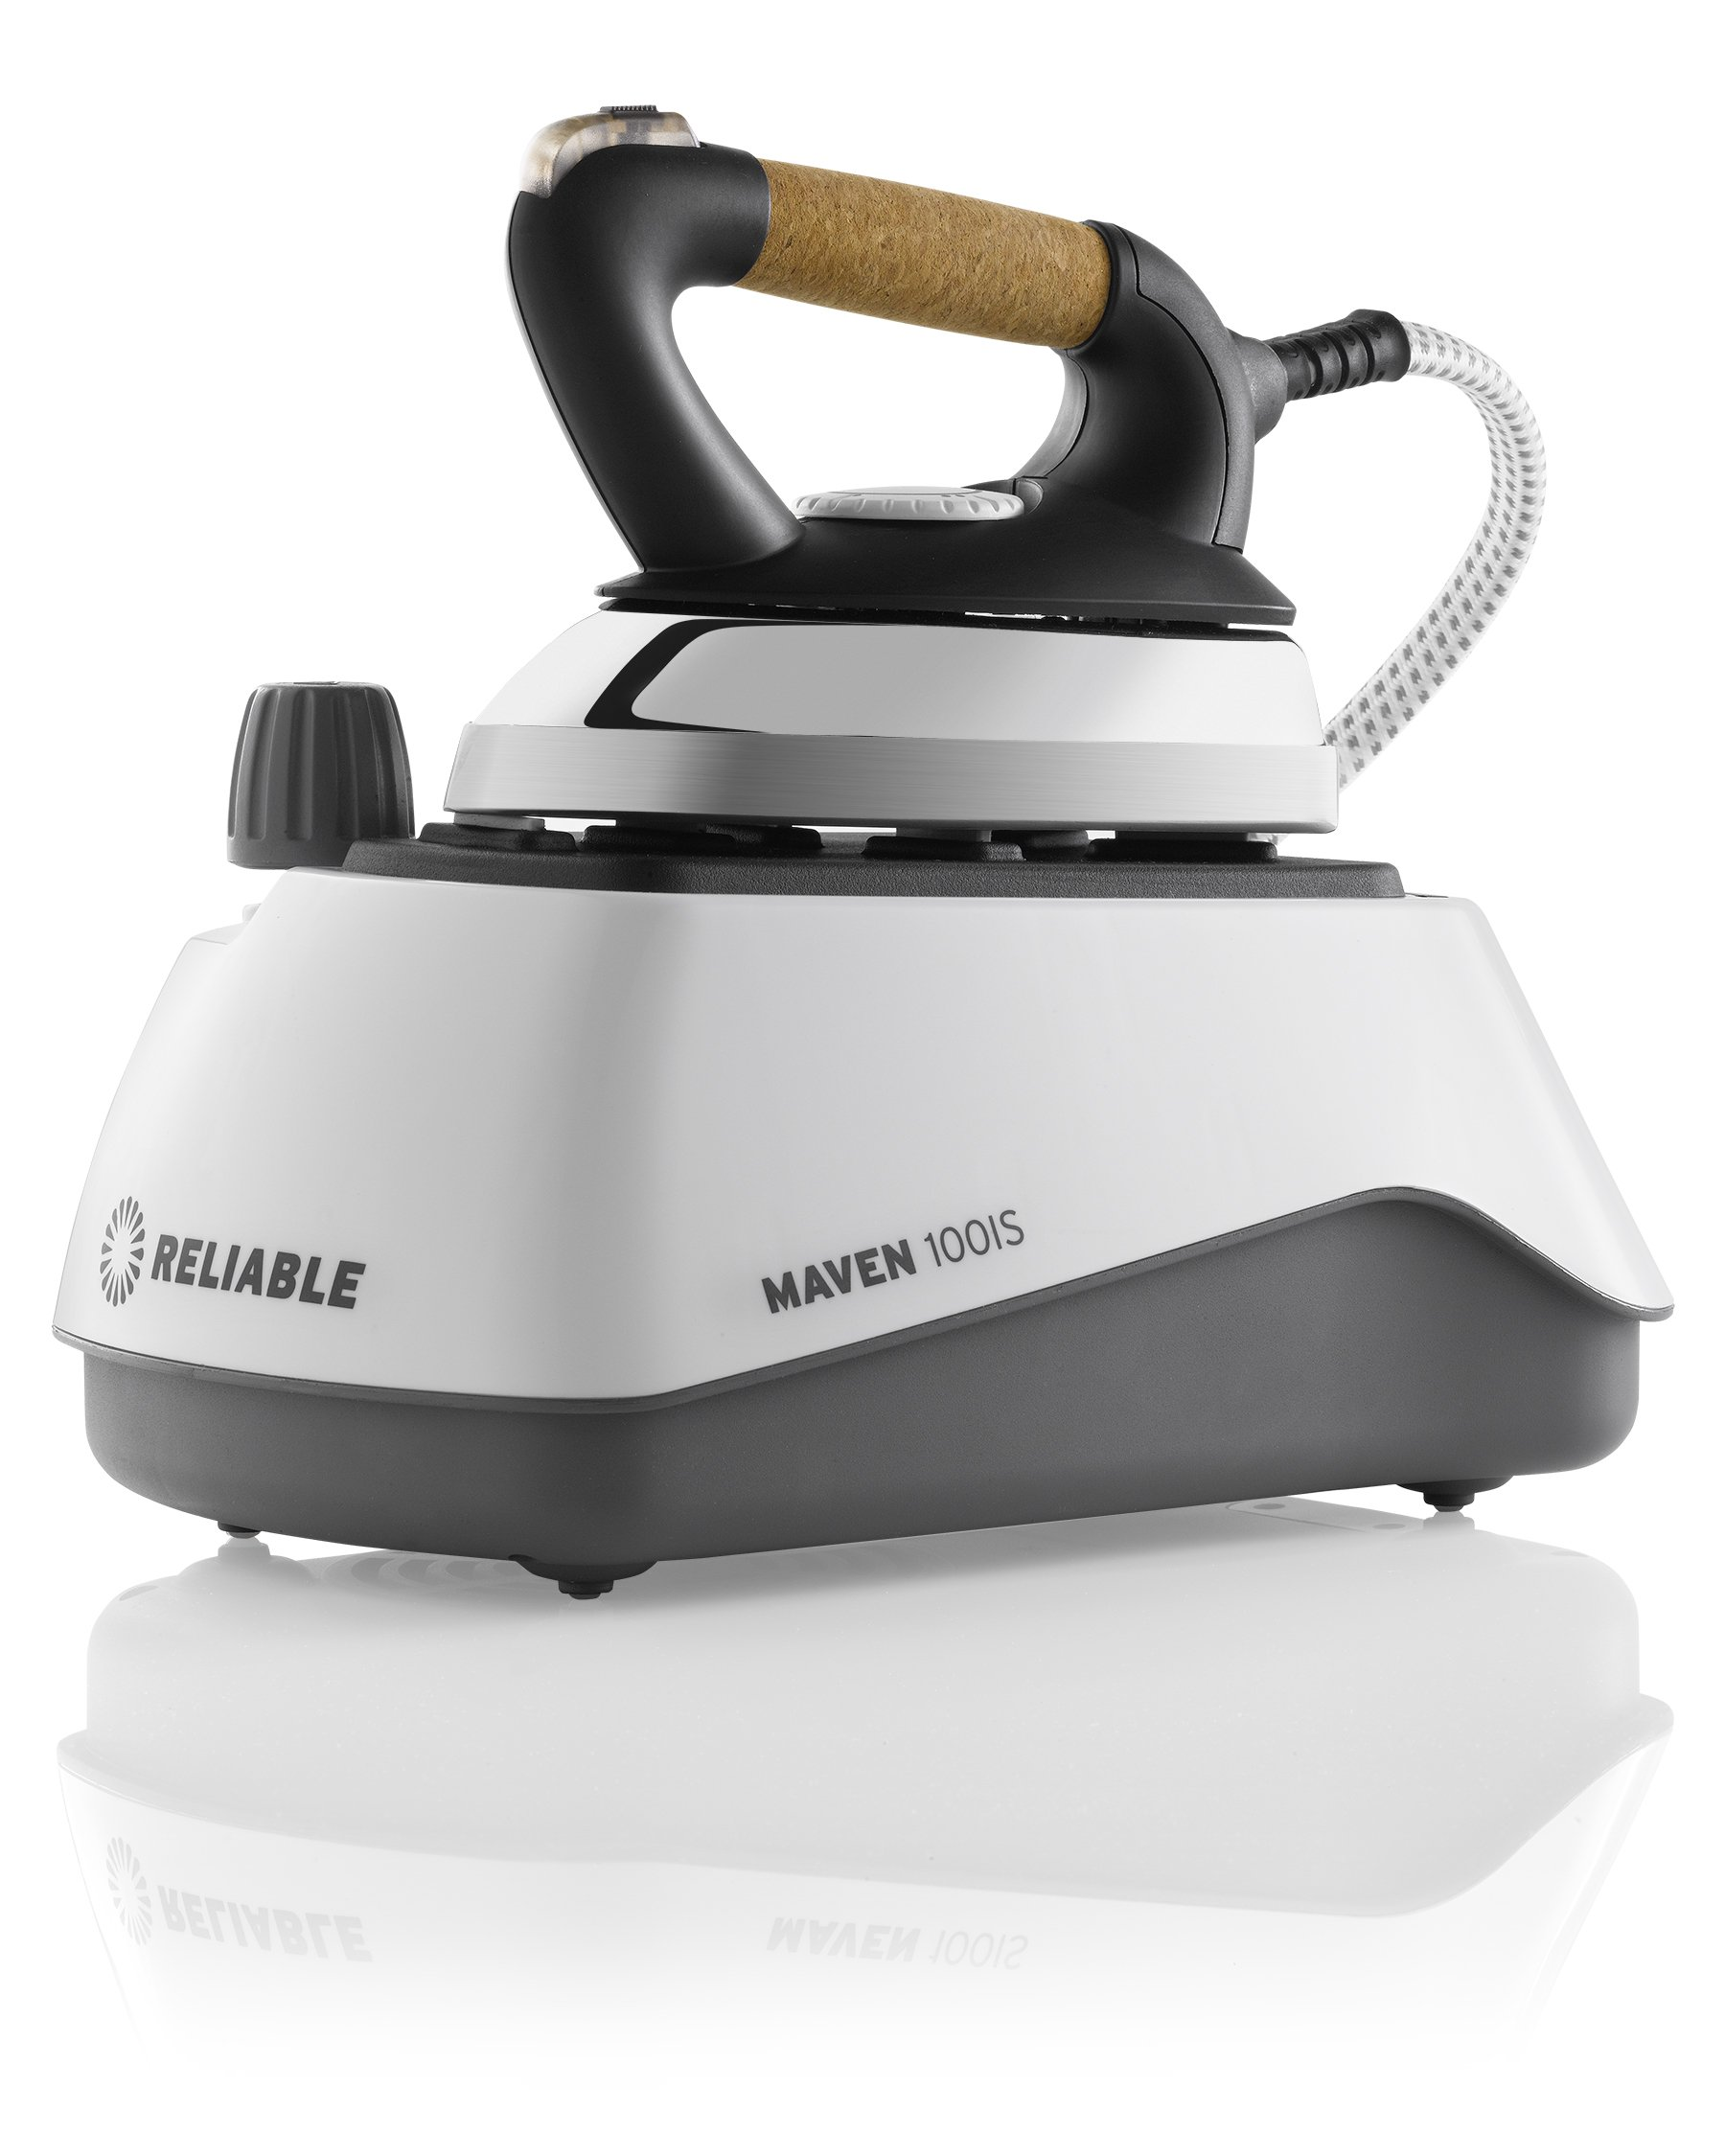 Reliable Maven 100IS Home Steam Ironing System with Lightweight Iron by Reliable